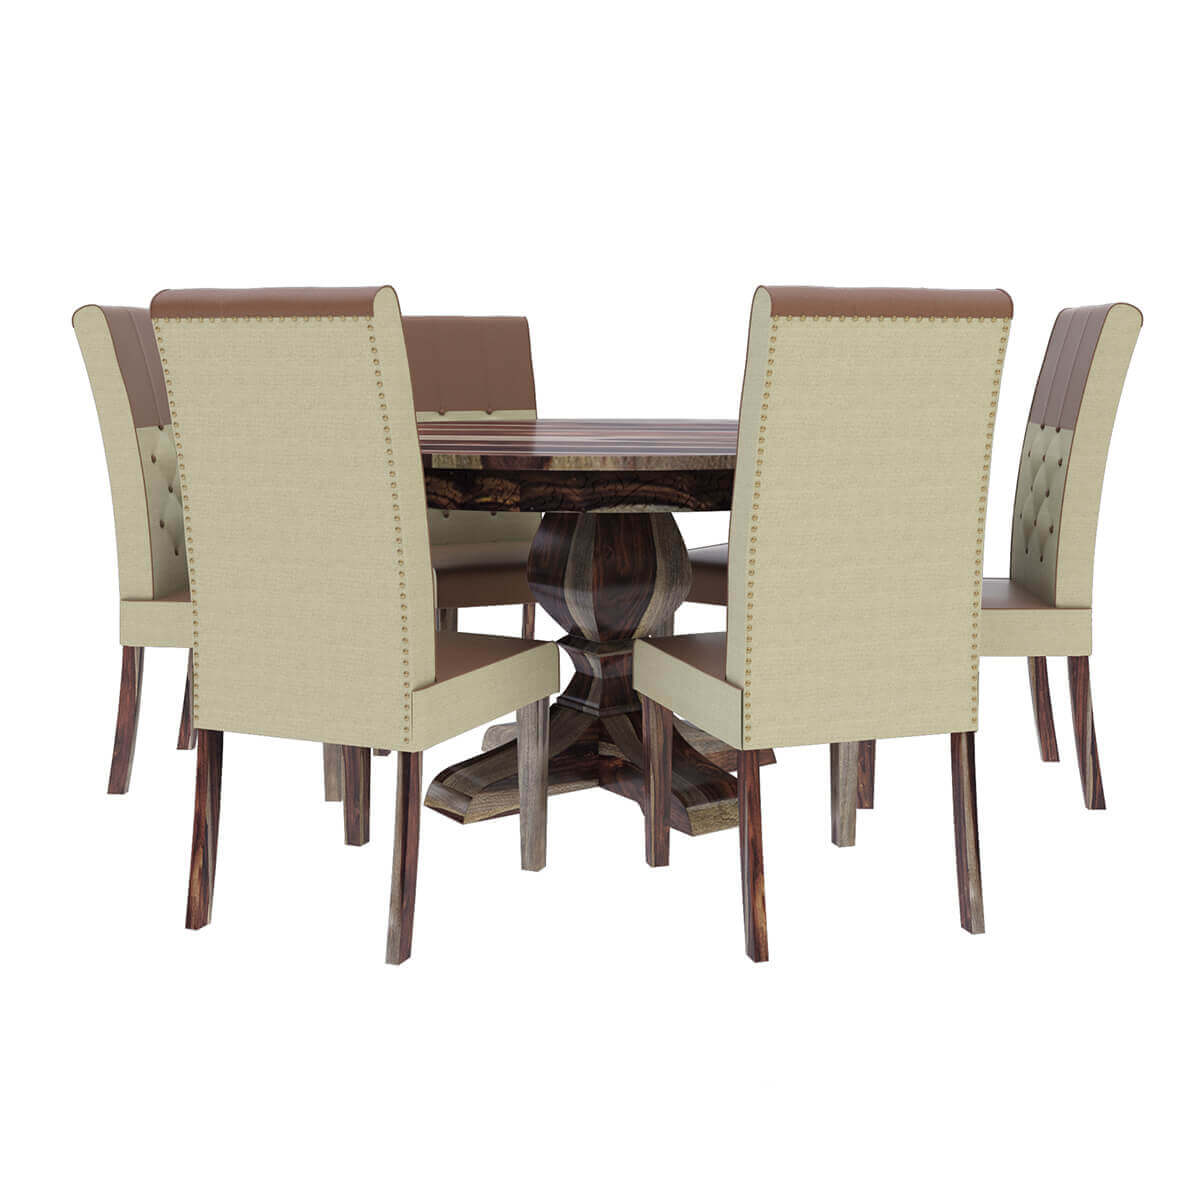 Solid Wood Table And Chairs: Hosford Handcrafted Solid Wood Round Dining Table And 6